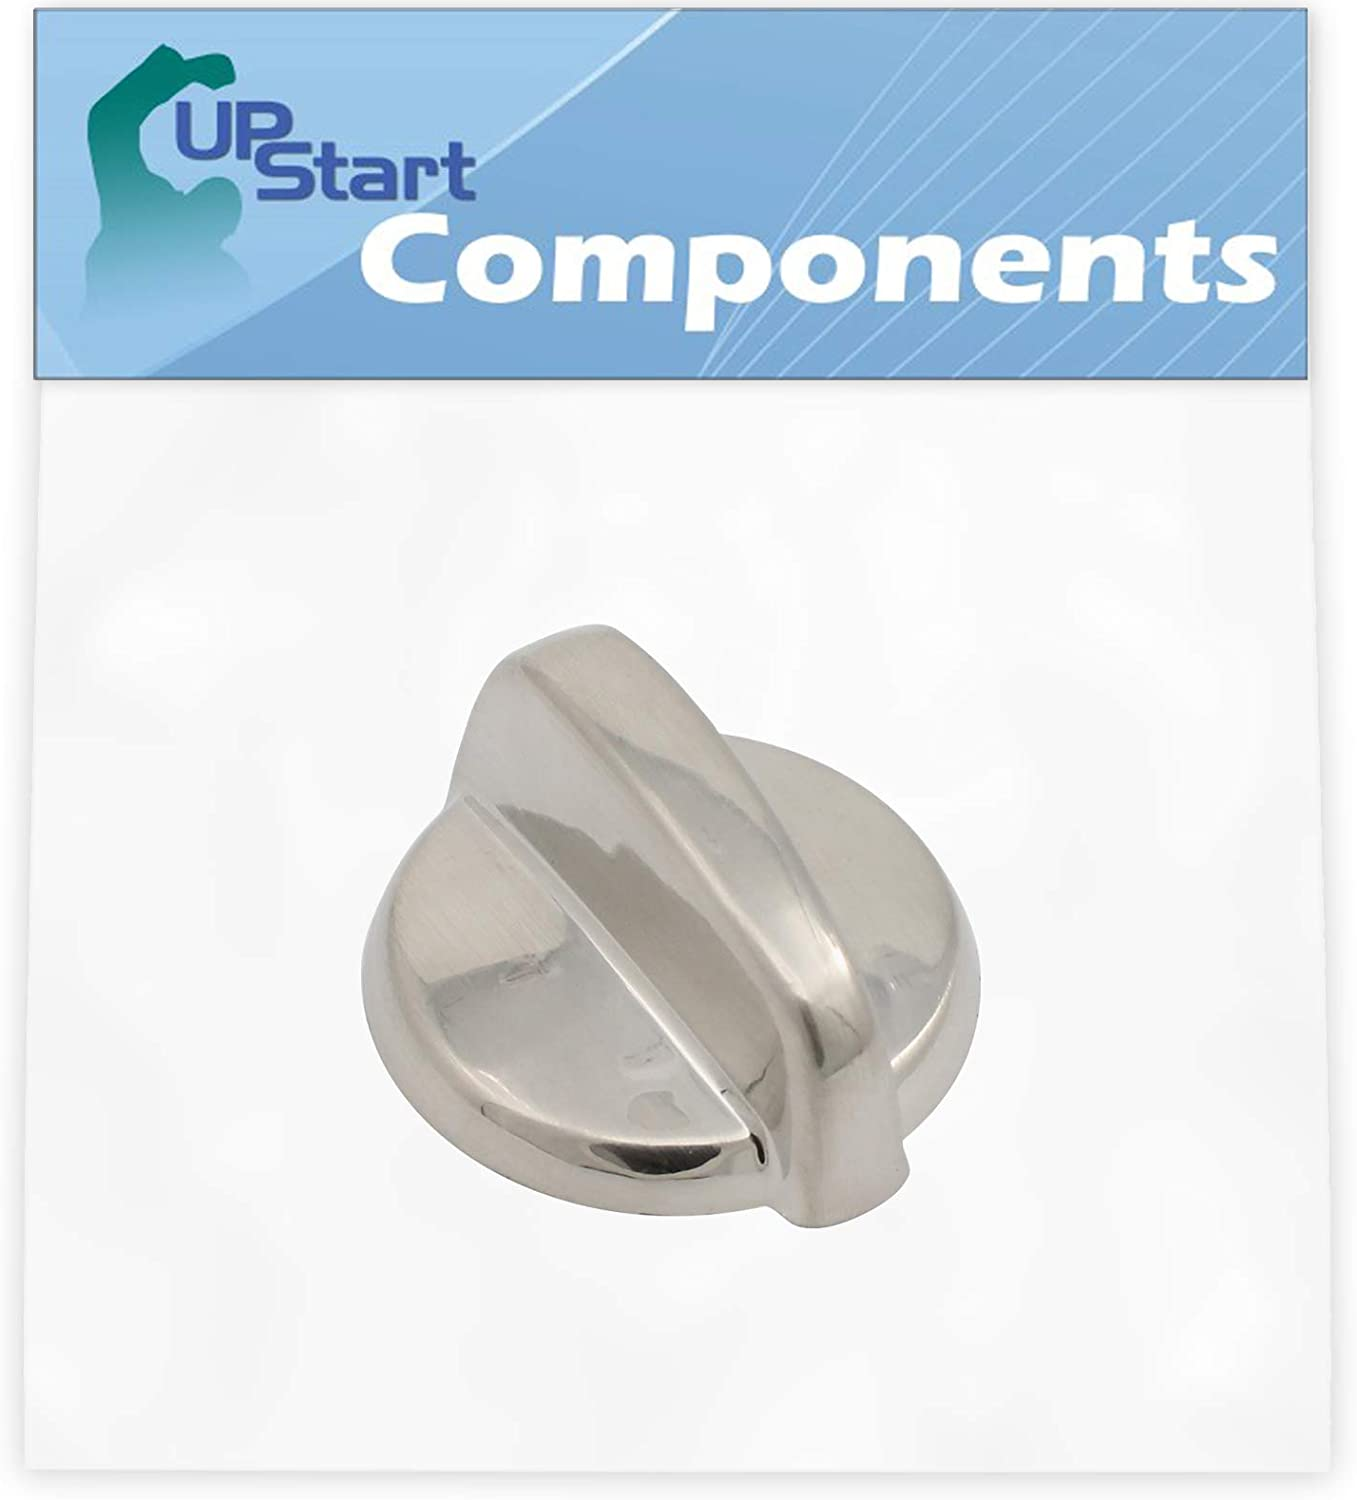 Replacement Control Knob WB03T10284 Stainless Steel Finish for General Electric JSP46SP3SS Range